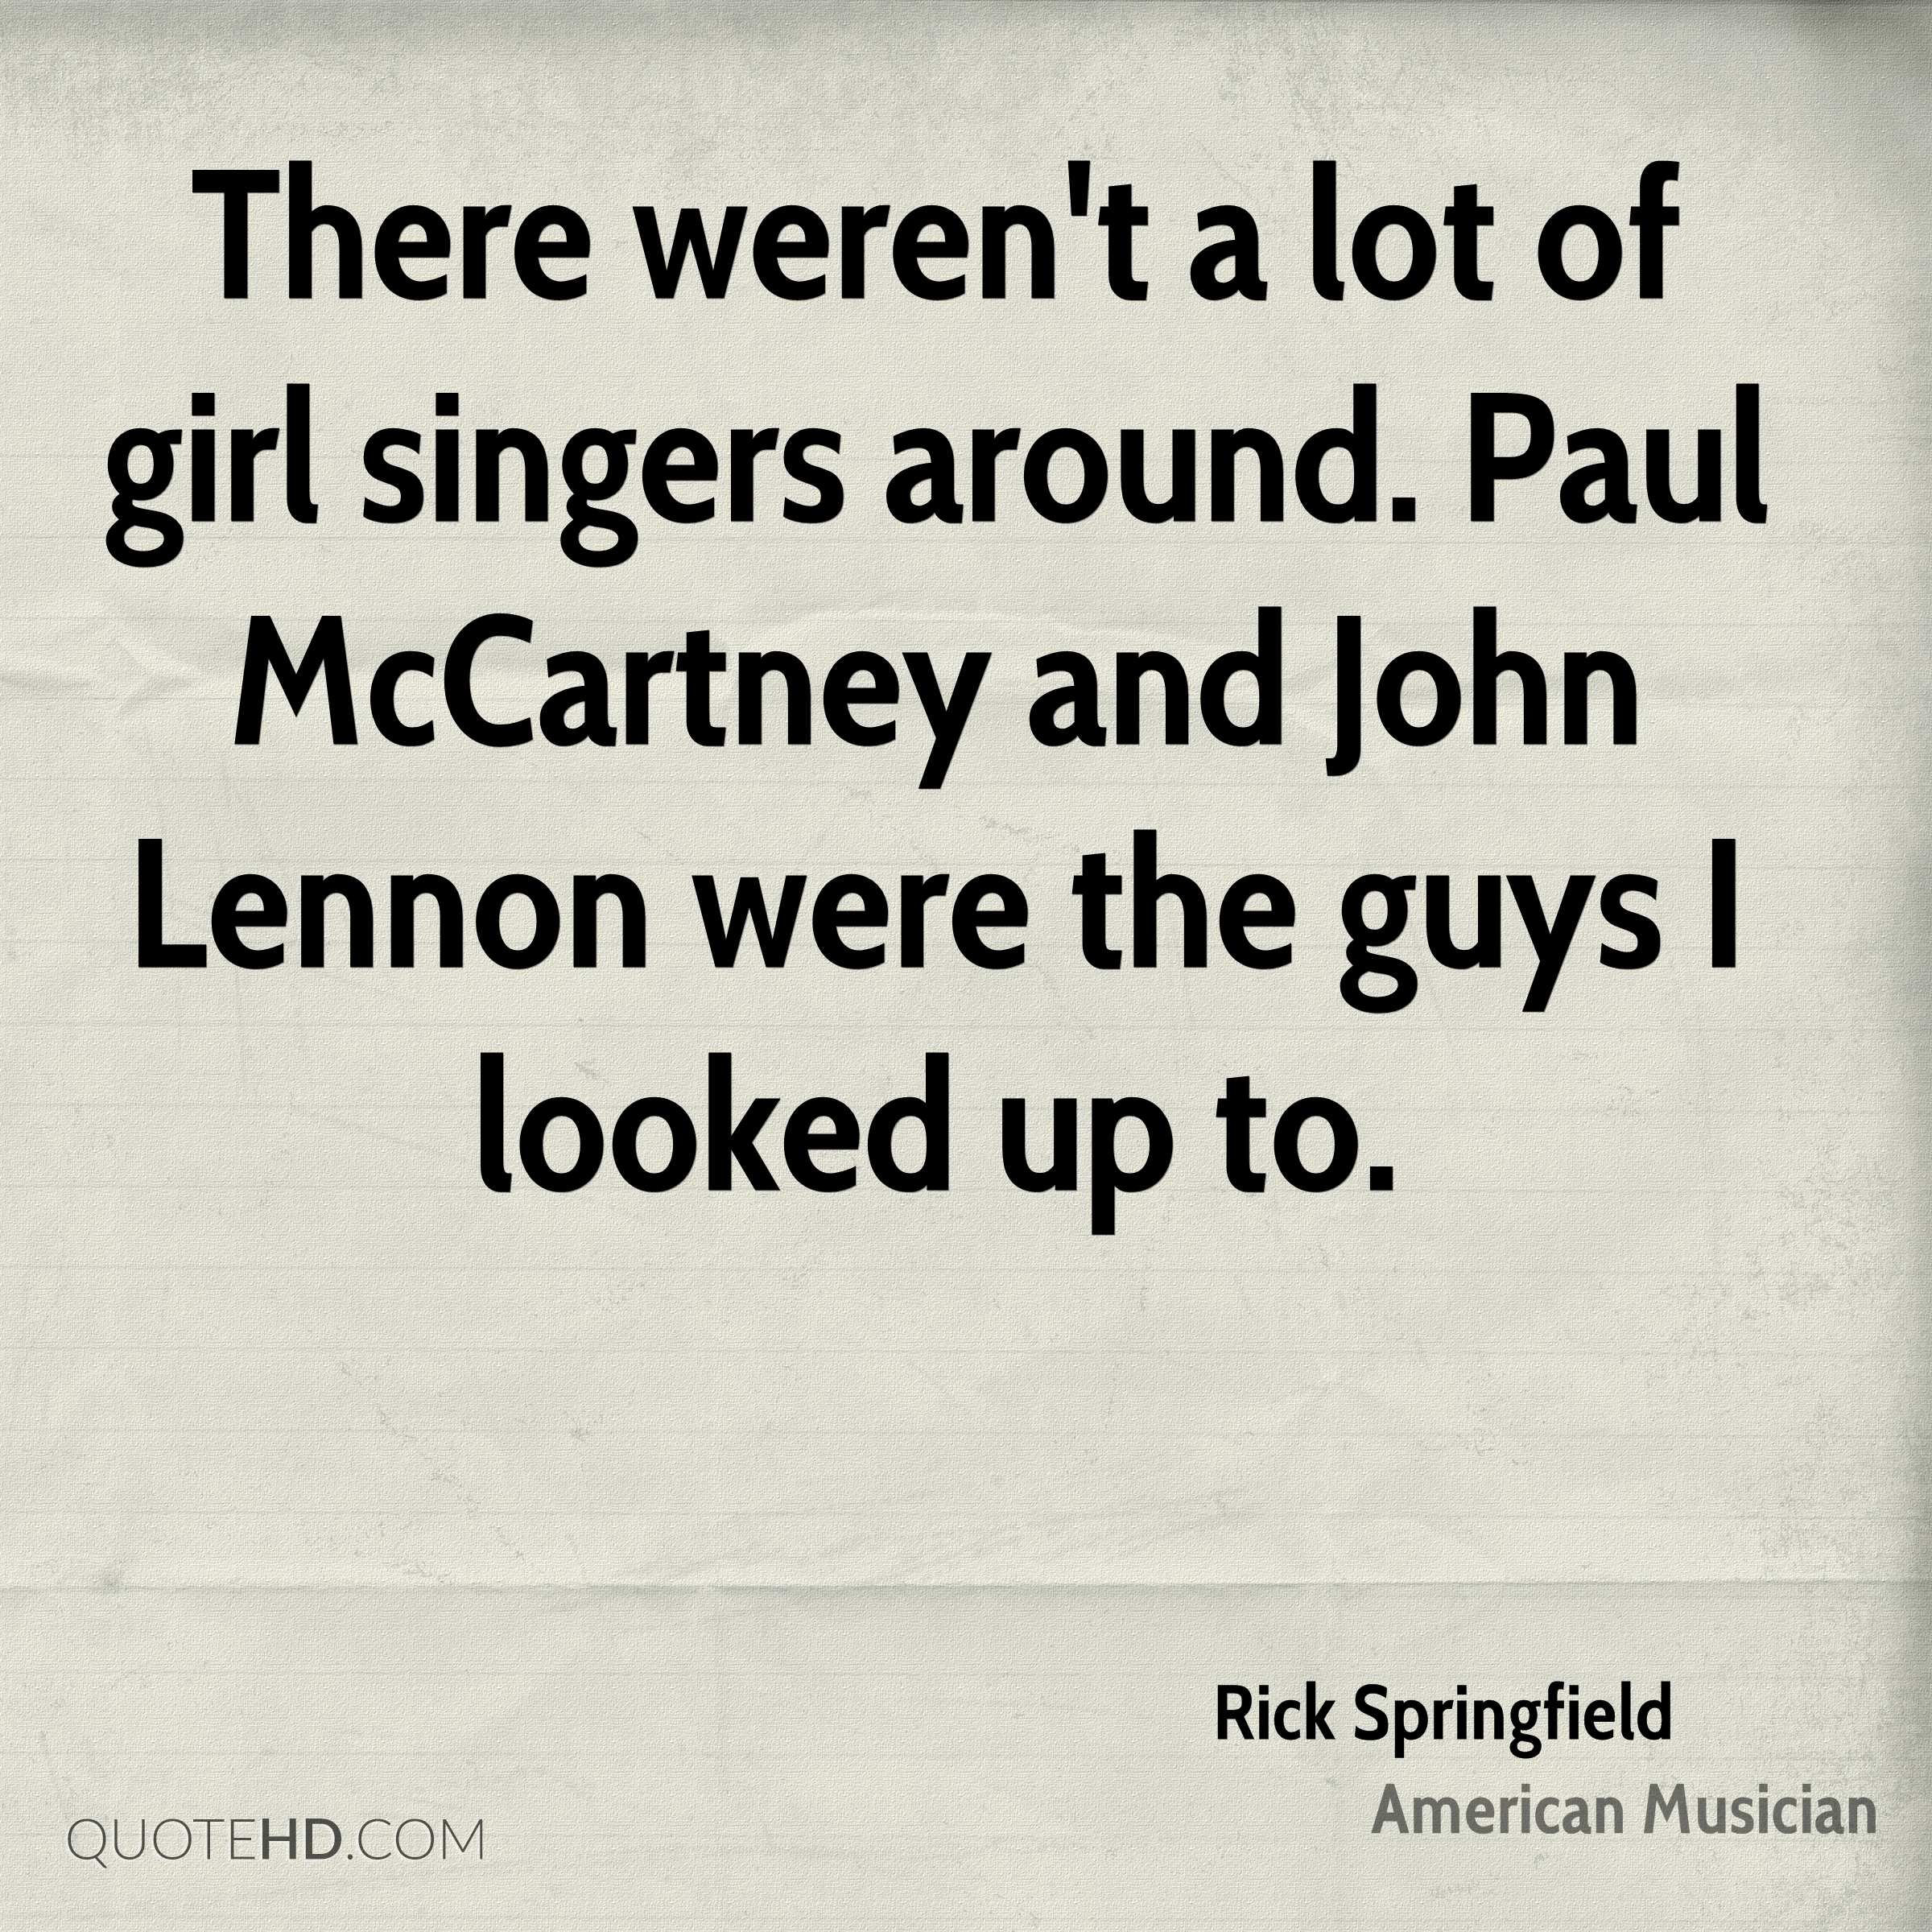 There weren't a lot of girl singers around. Paul McCartney and John Lennon were the guys I looked up to.